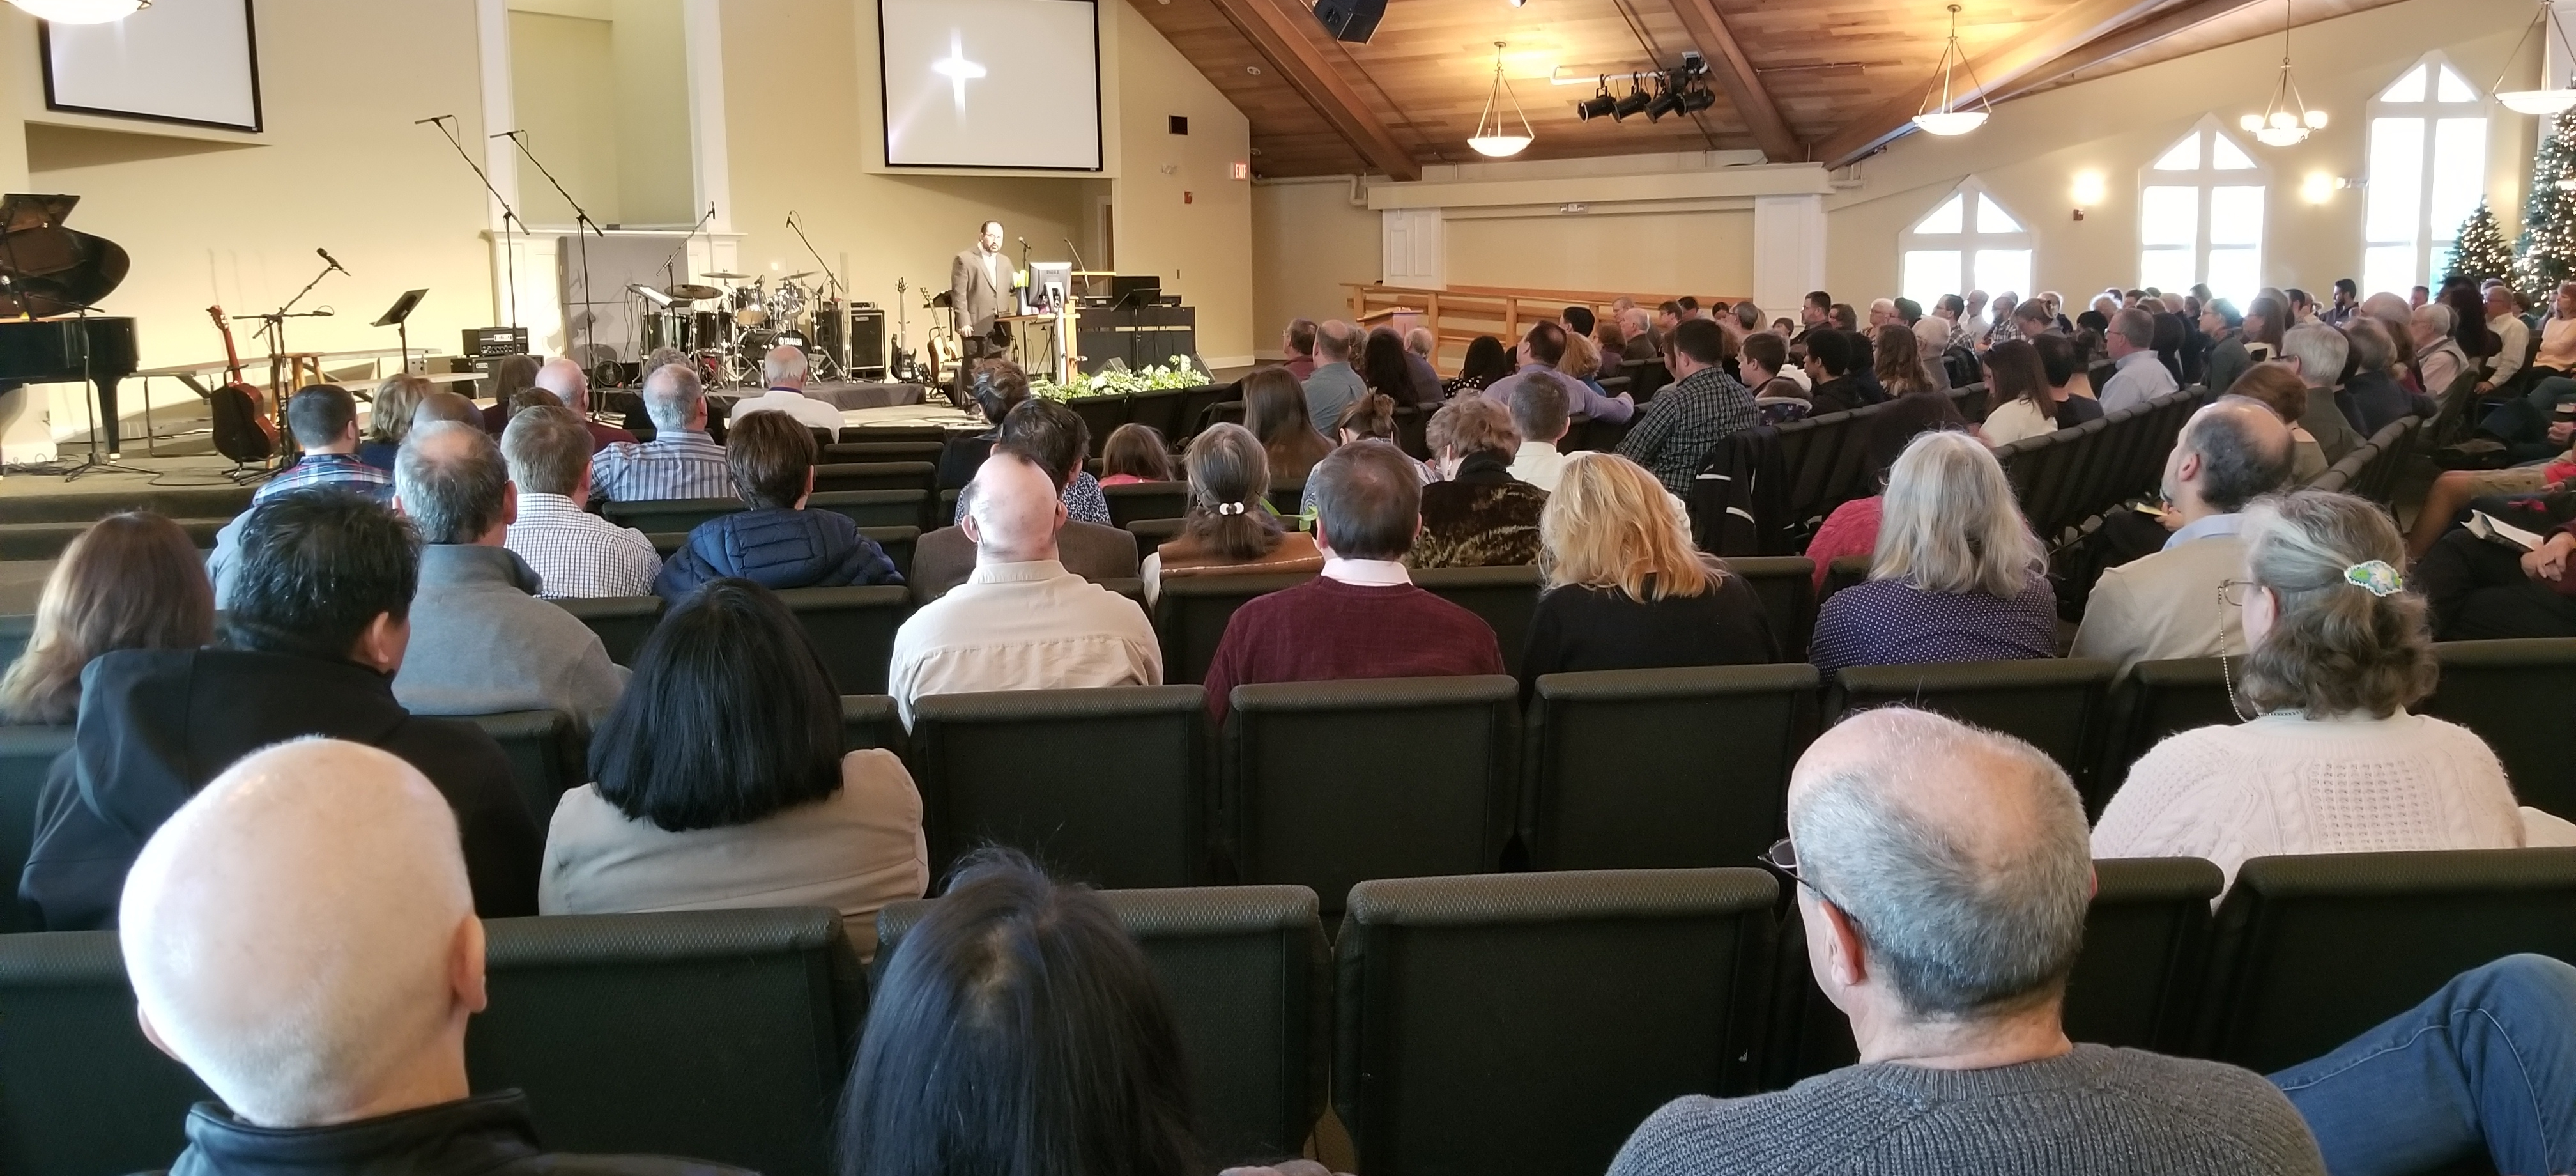 I had the honor to be the keynote preacher at a Missions Conference. It was terrific! The text, Matthew 5, 'The Beatitudes.' True born-again believers will be different than the world, and different than how we were before Christ. And we'll be so in love and awe with Jesus that it'll be hard to shut us up from talking about Him!